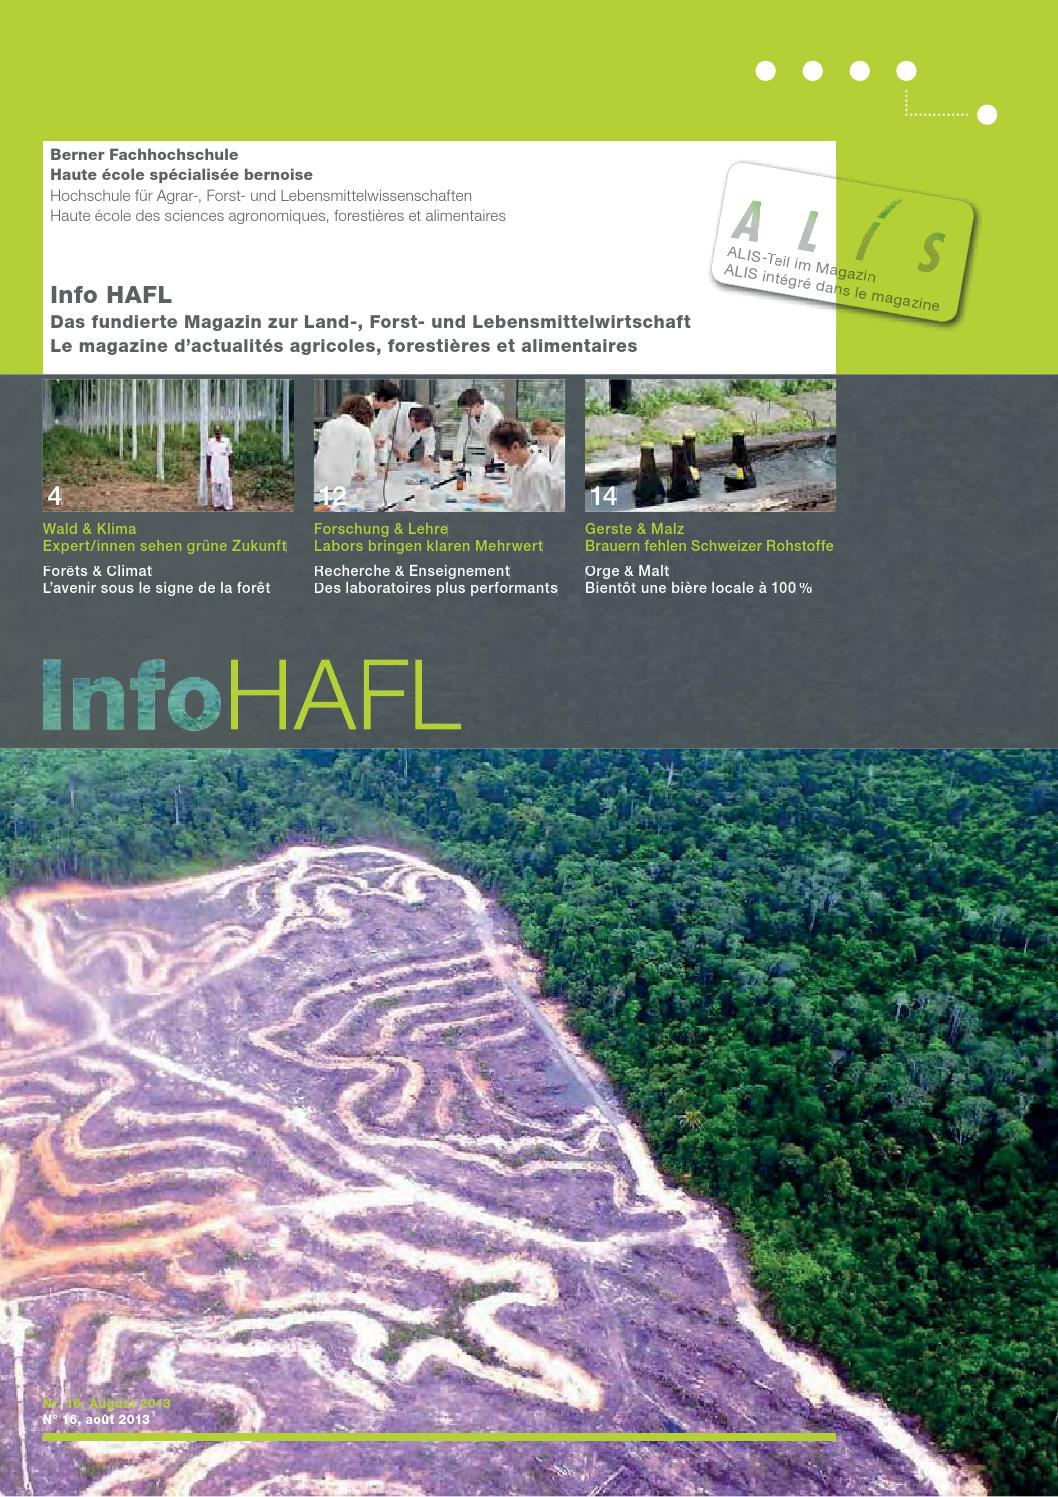 InfoHAFL 2/2013 By BFH HAFL   Issuu